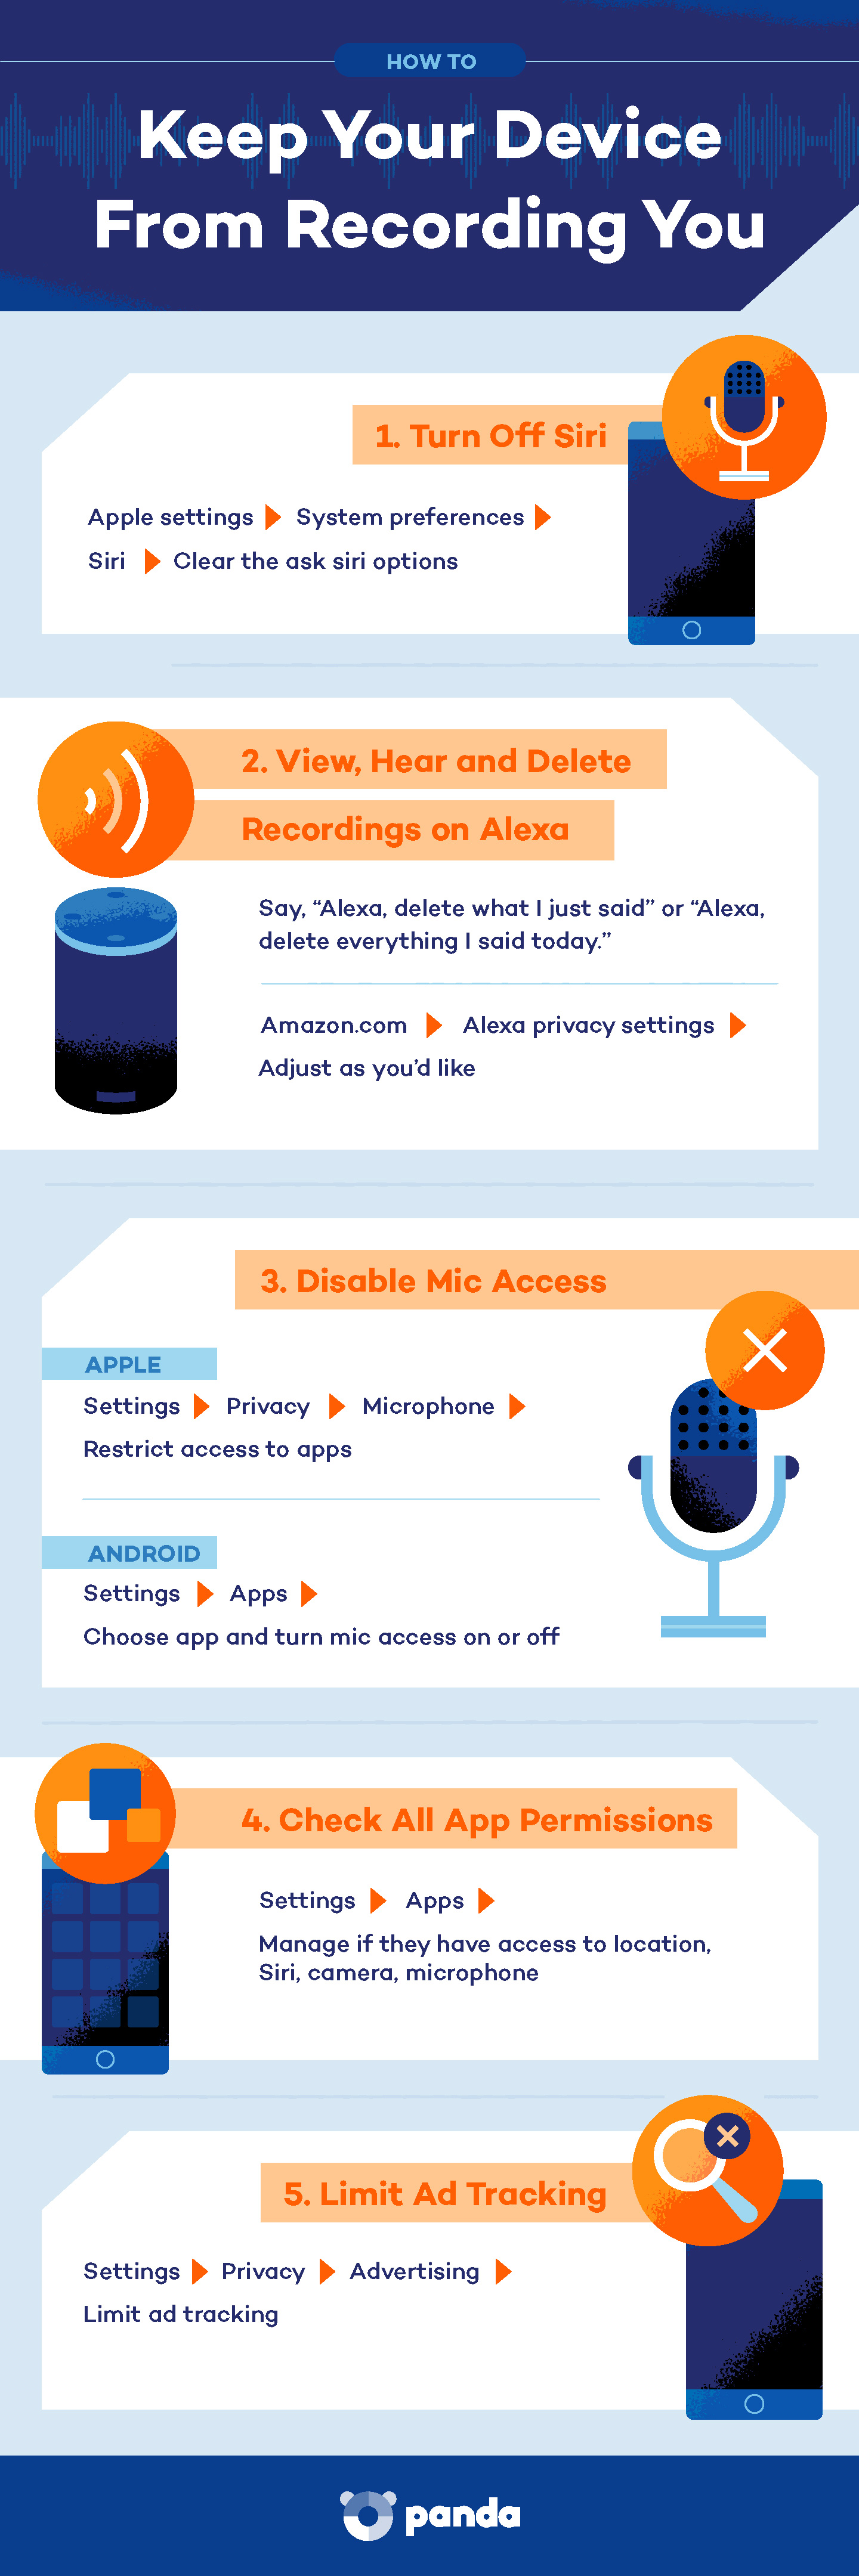 infographic of how to keep your device from recording you